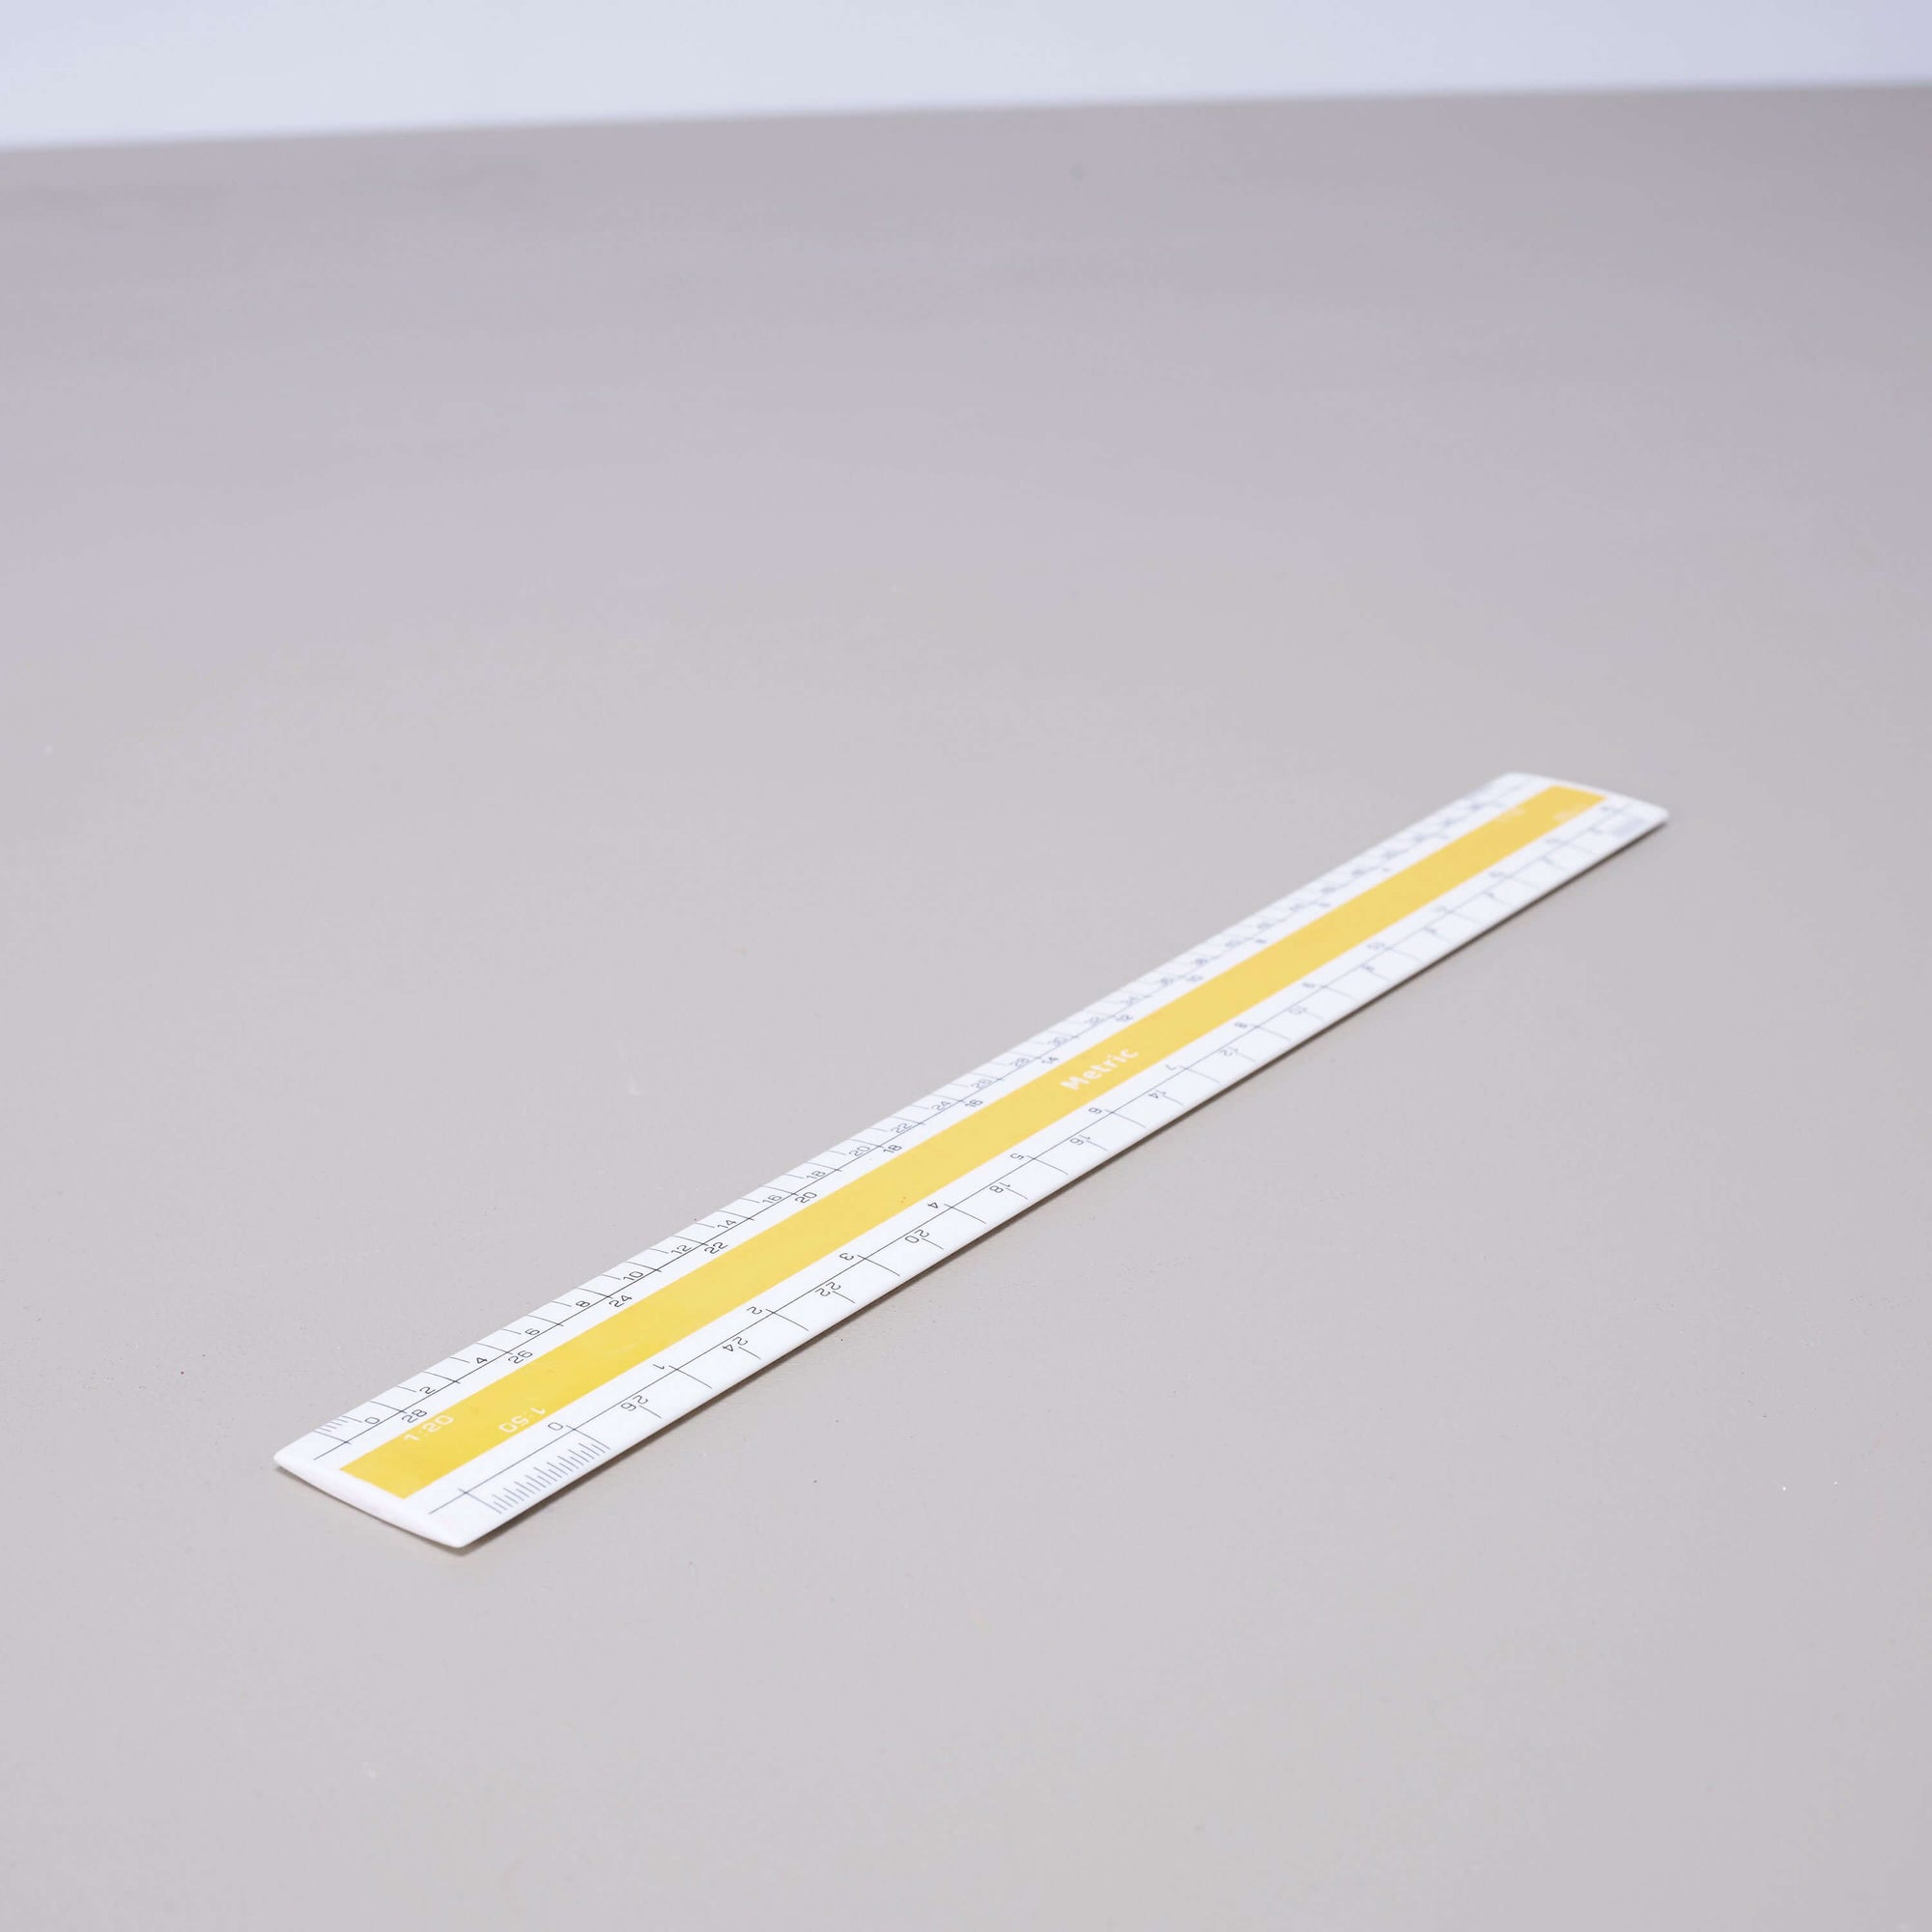 ARTdiscount ISOmars Oval Rulers (Metric)